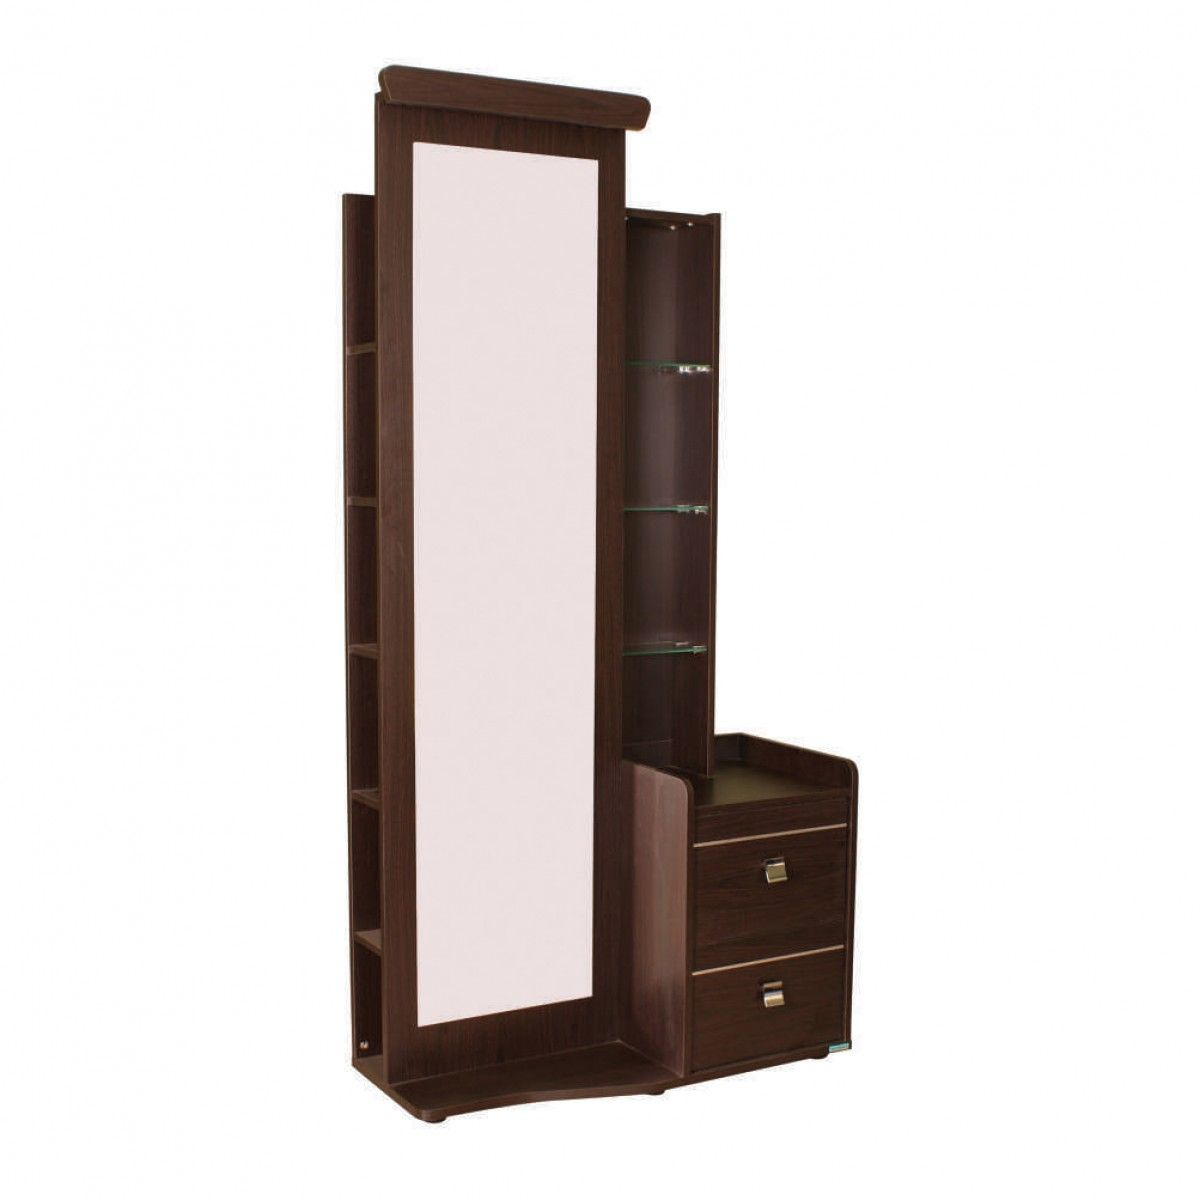 dressing table with full mirror | Furniture | Dressing ...